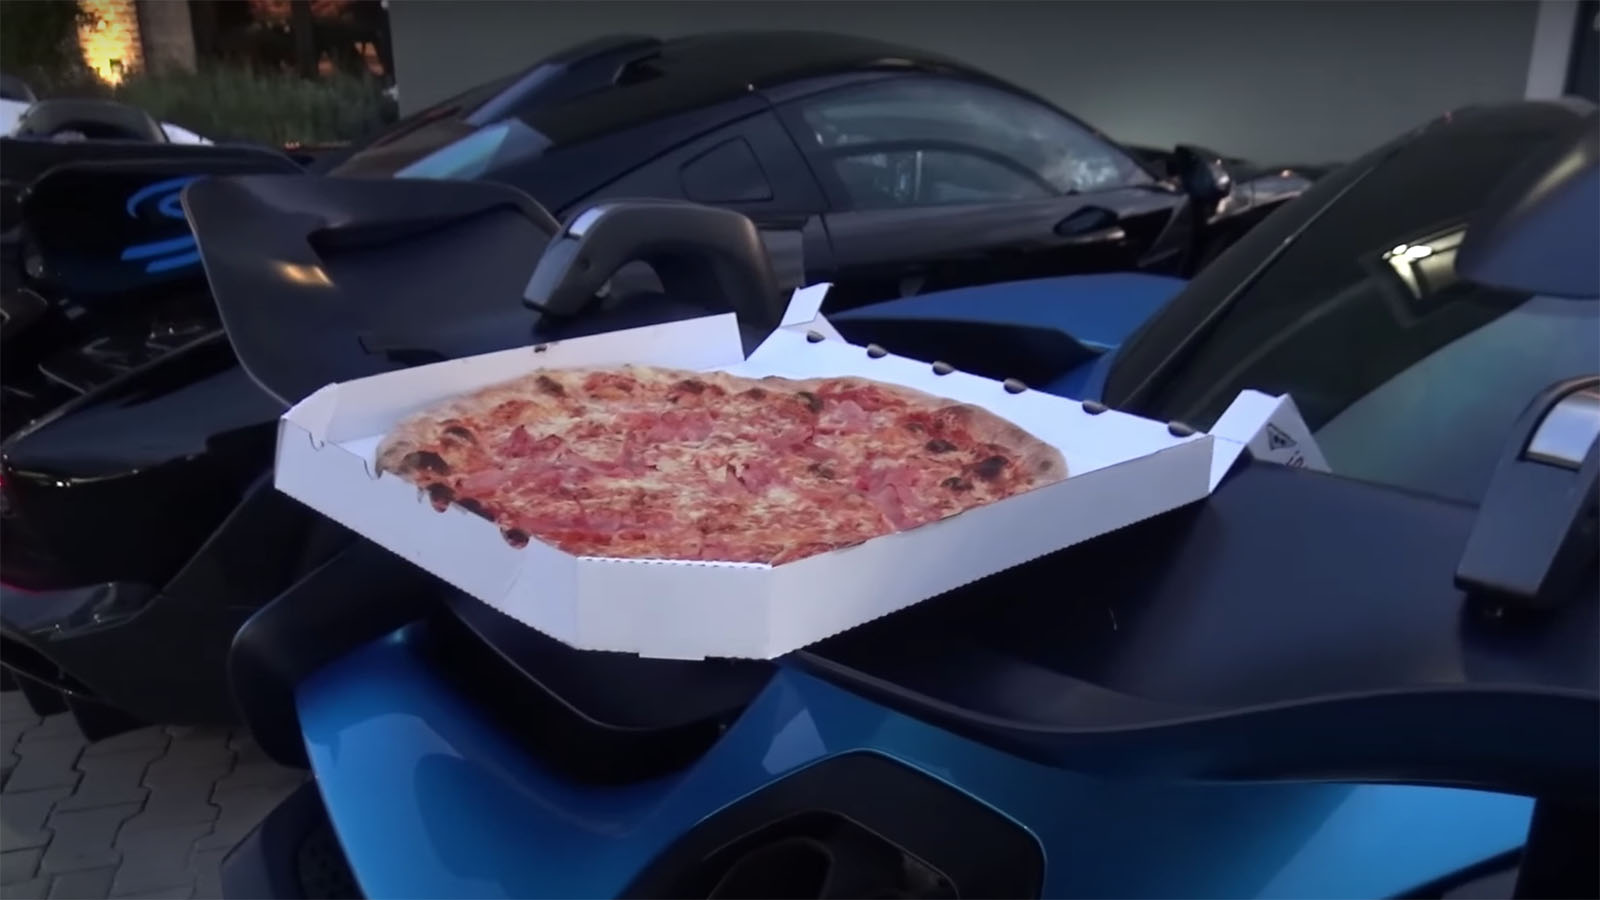 Shmee150 Pizza on Senna Wing